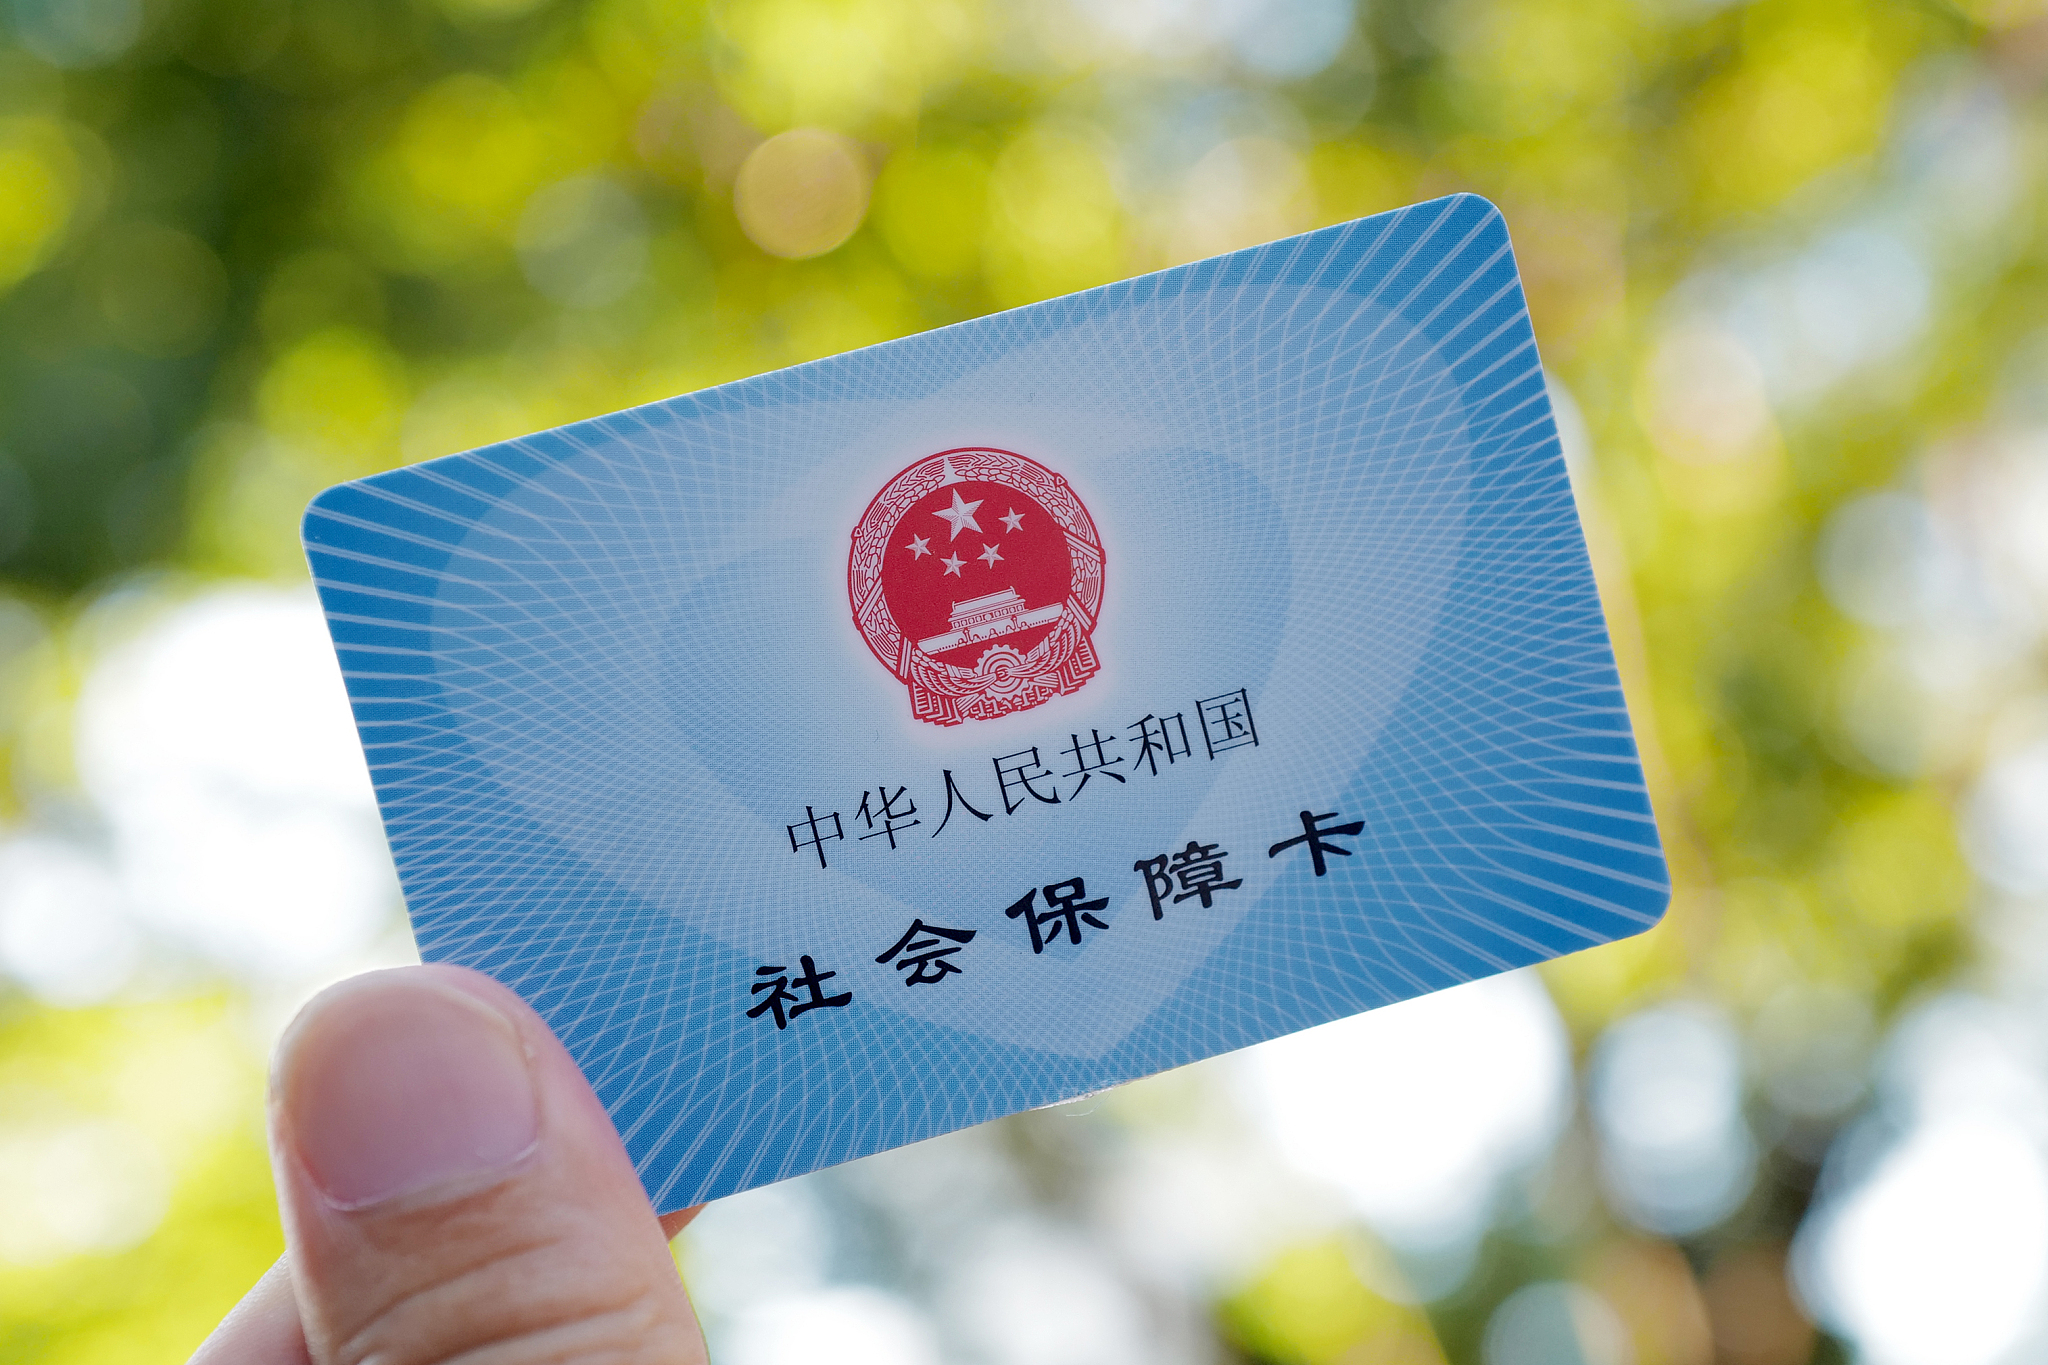 China has built up the world's largest social security system: Official